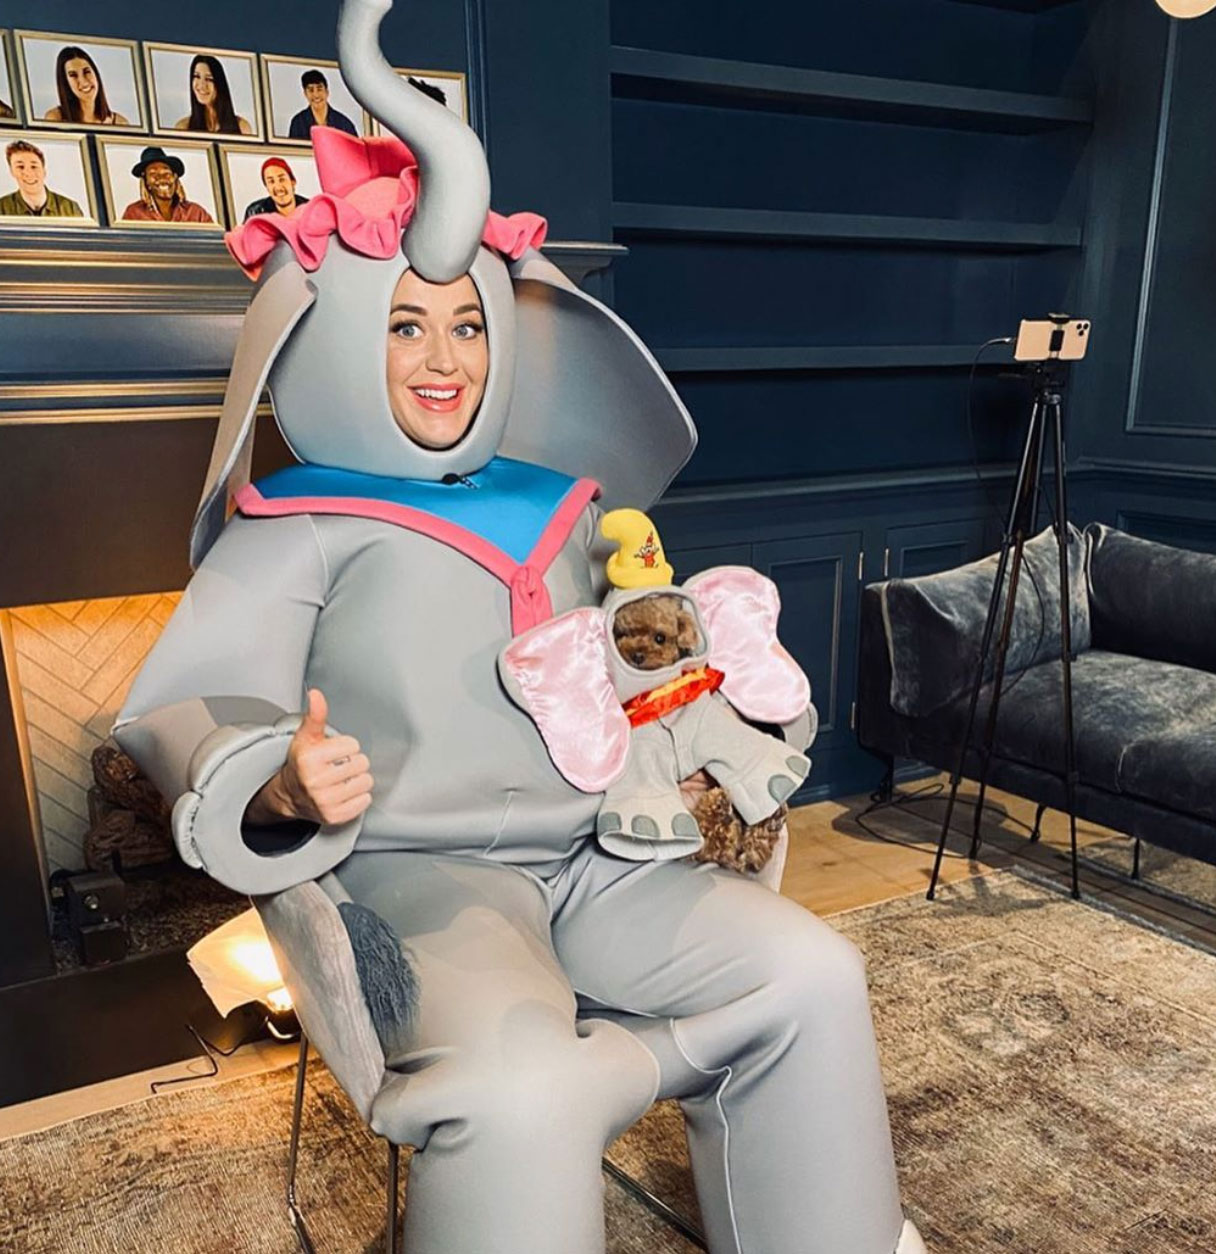 Katy Perry Halloween 2020 Pregnant Katy Perry Sings 'Baby Mine' During Disney's Family